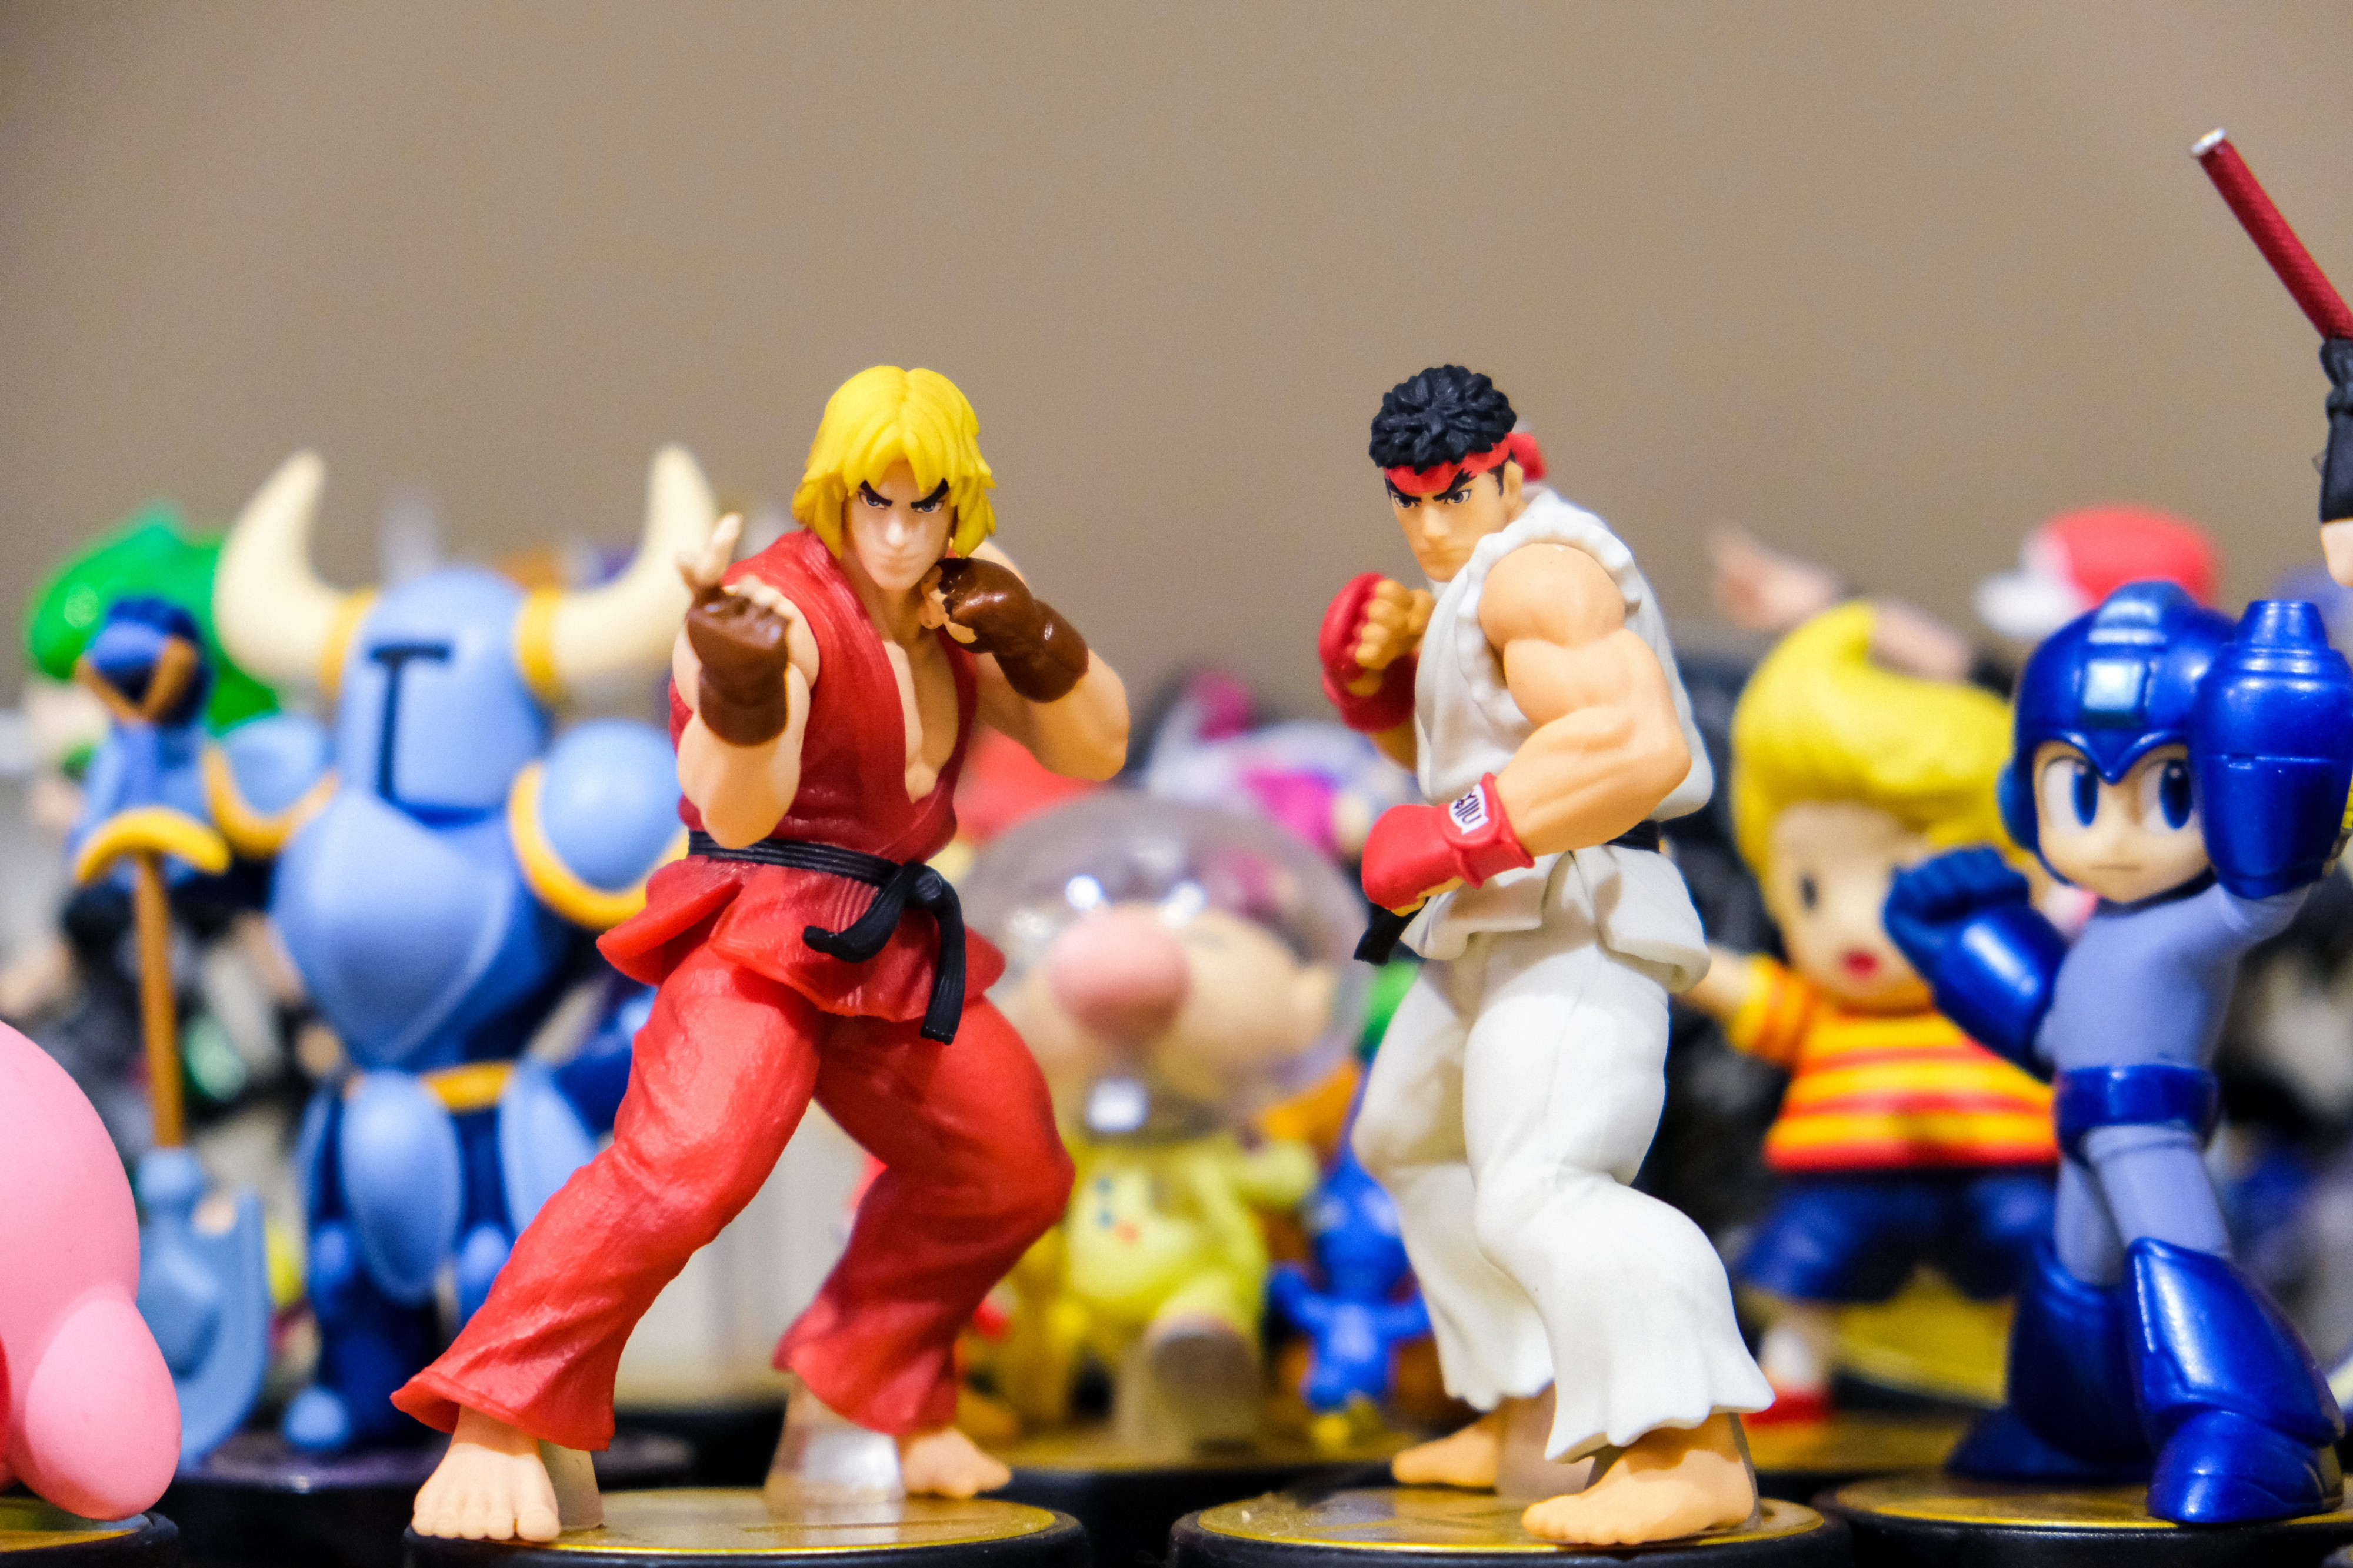 Street Fighter Ii Is Hard So I Trained An Ai To Beat It For Me